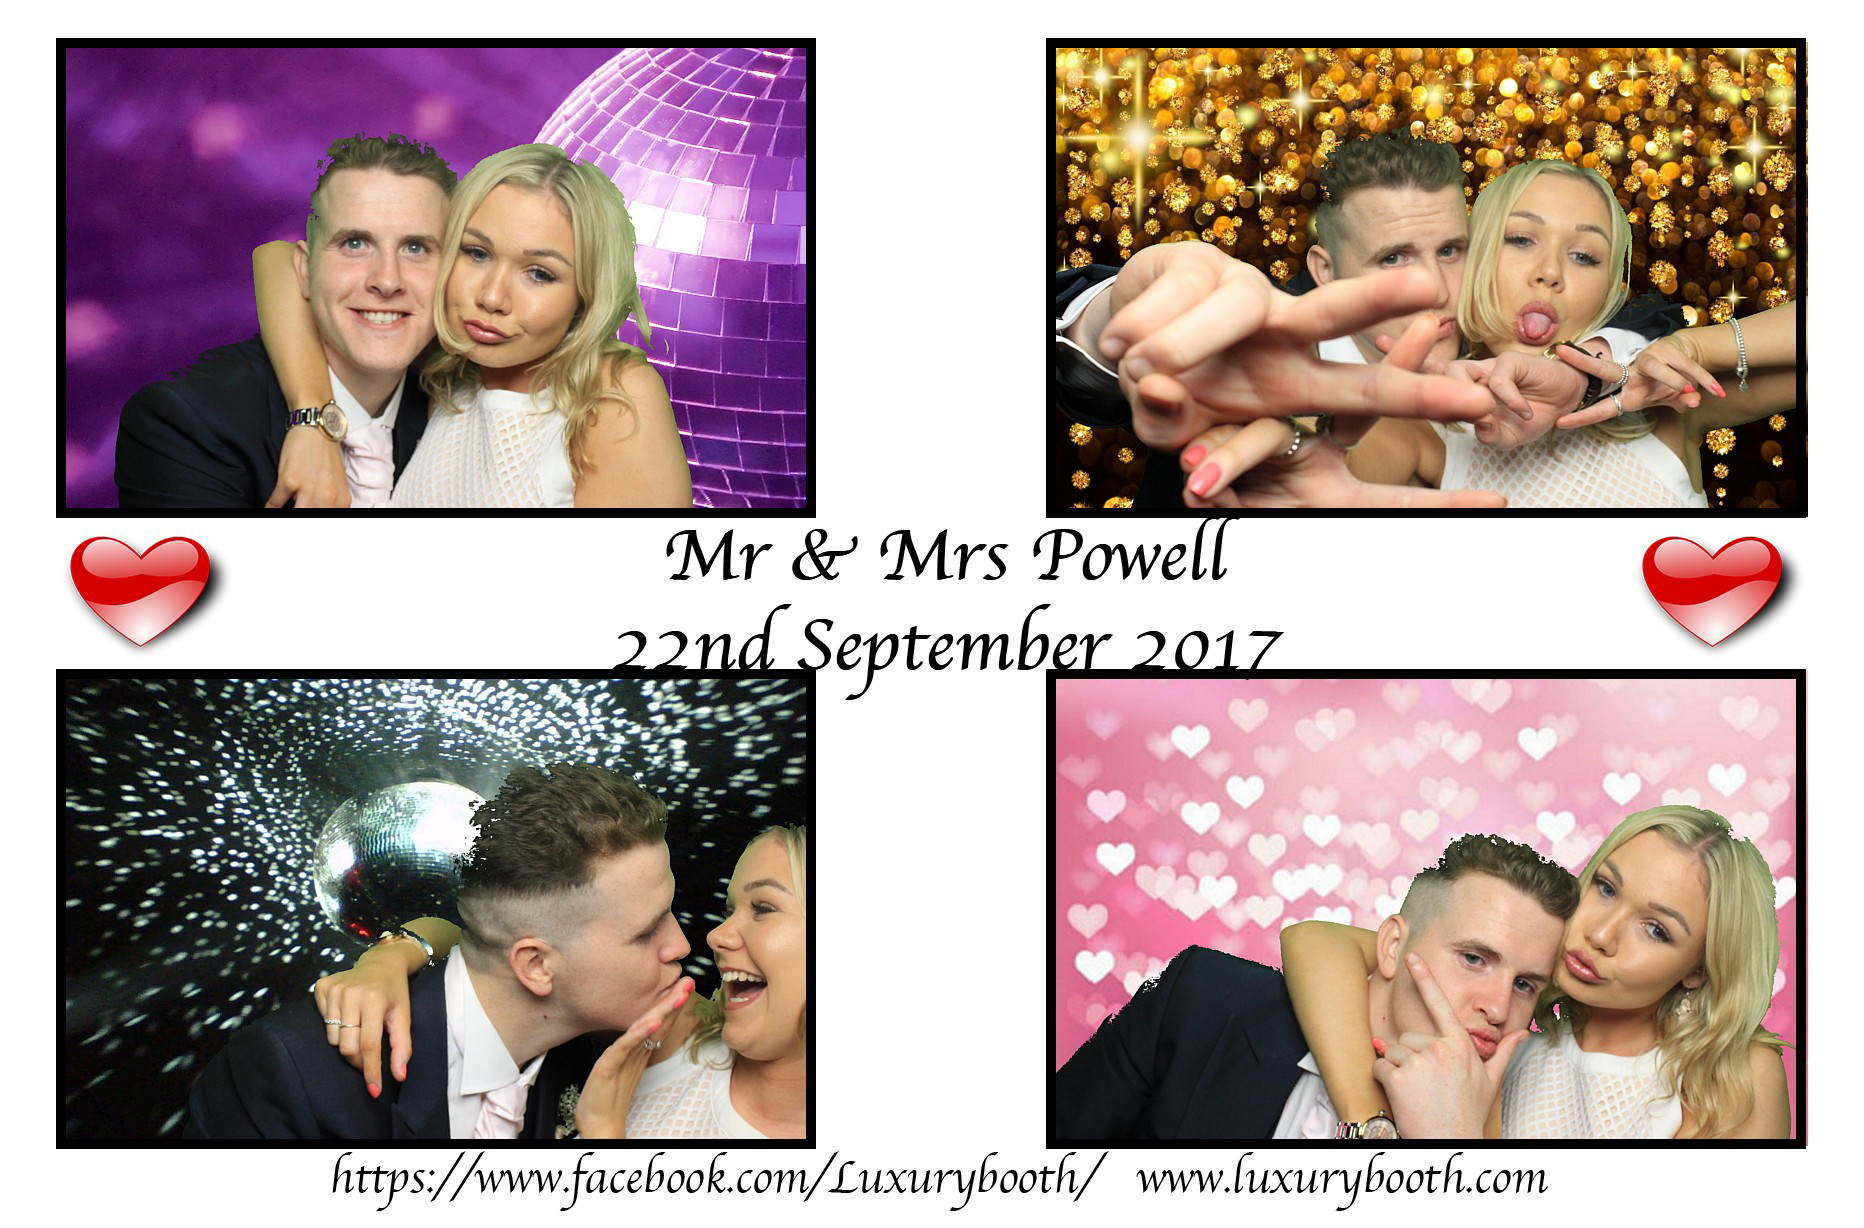 A happy couple in our traditiona photo booth with green screen backgrounds